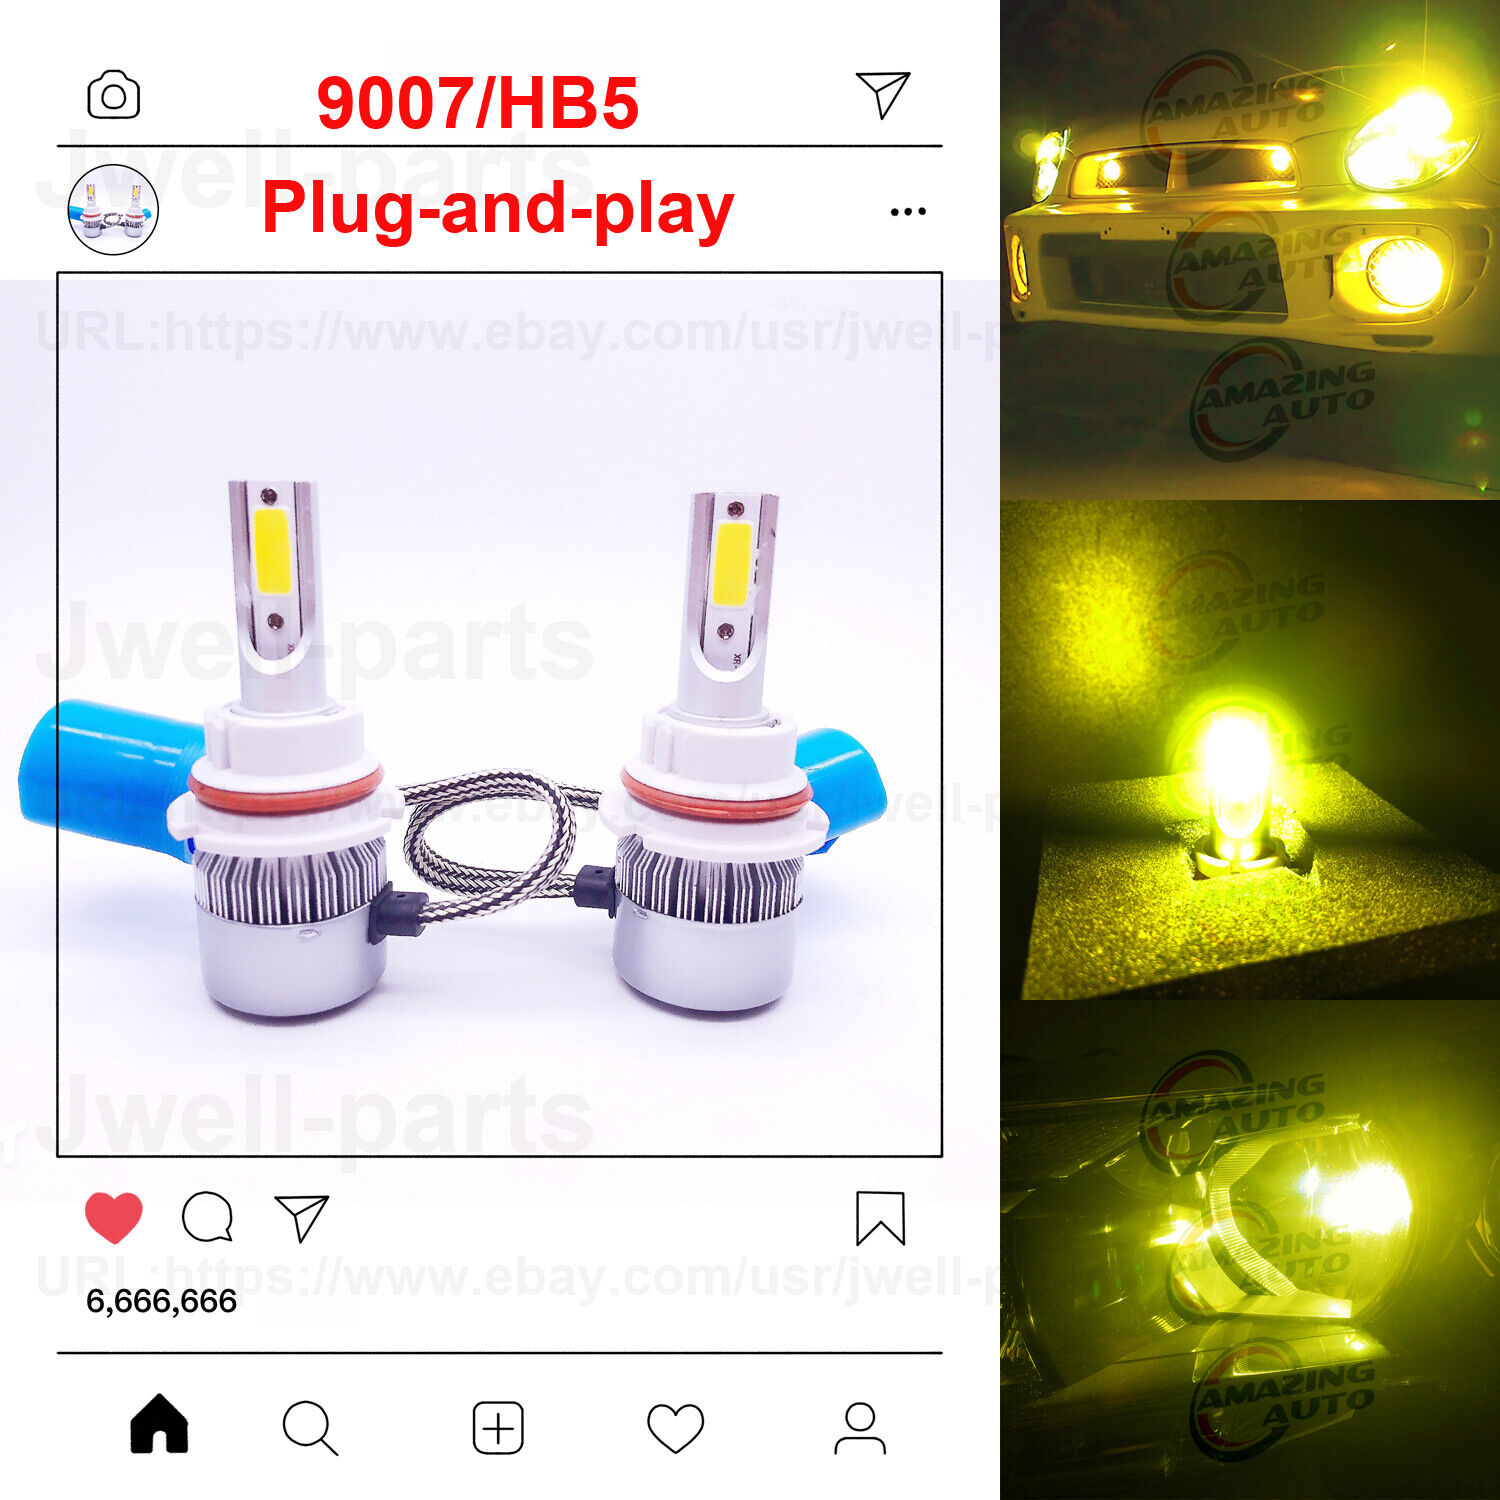 Car Parts - 2020 NEW 9007 HB5 LED Headlights Bulbs Performance Kit 45W 4000LM 3000K Yellow